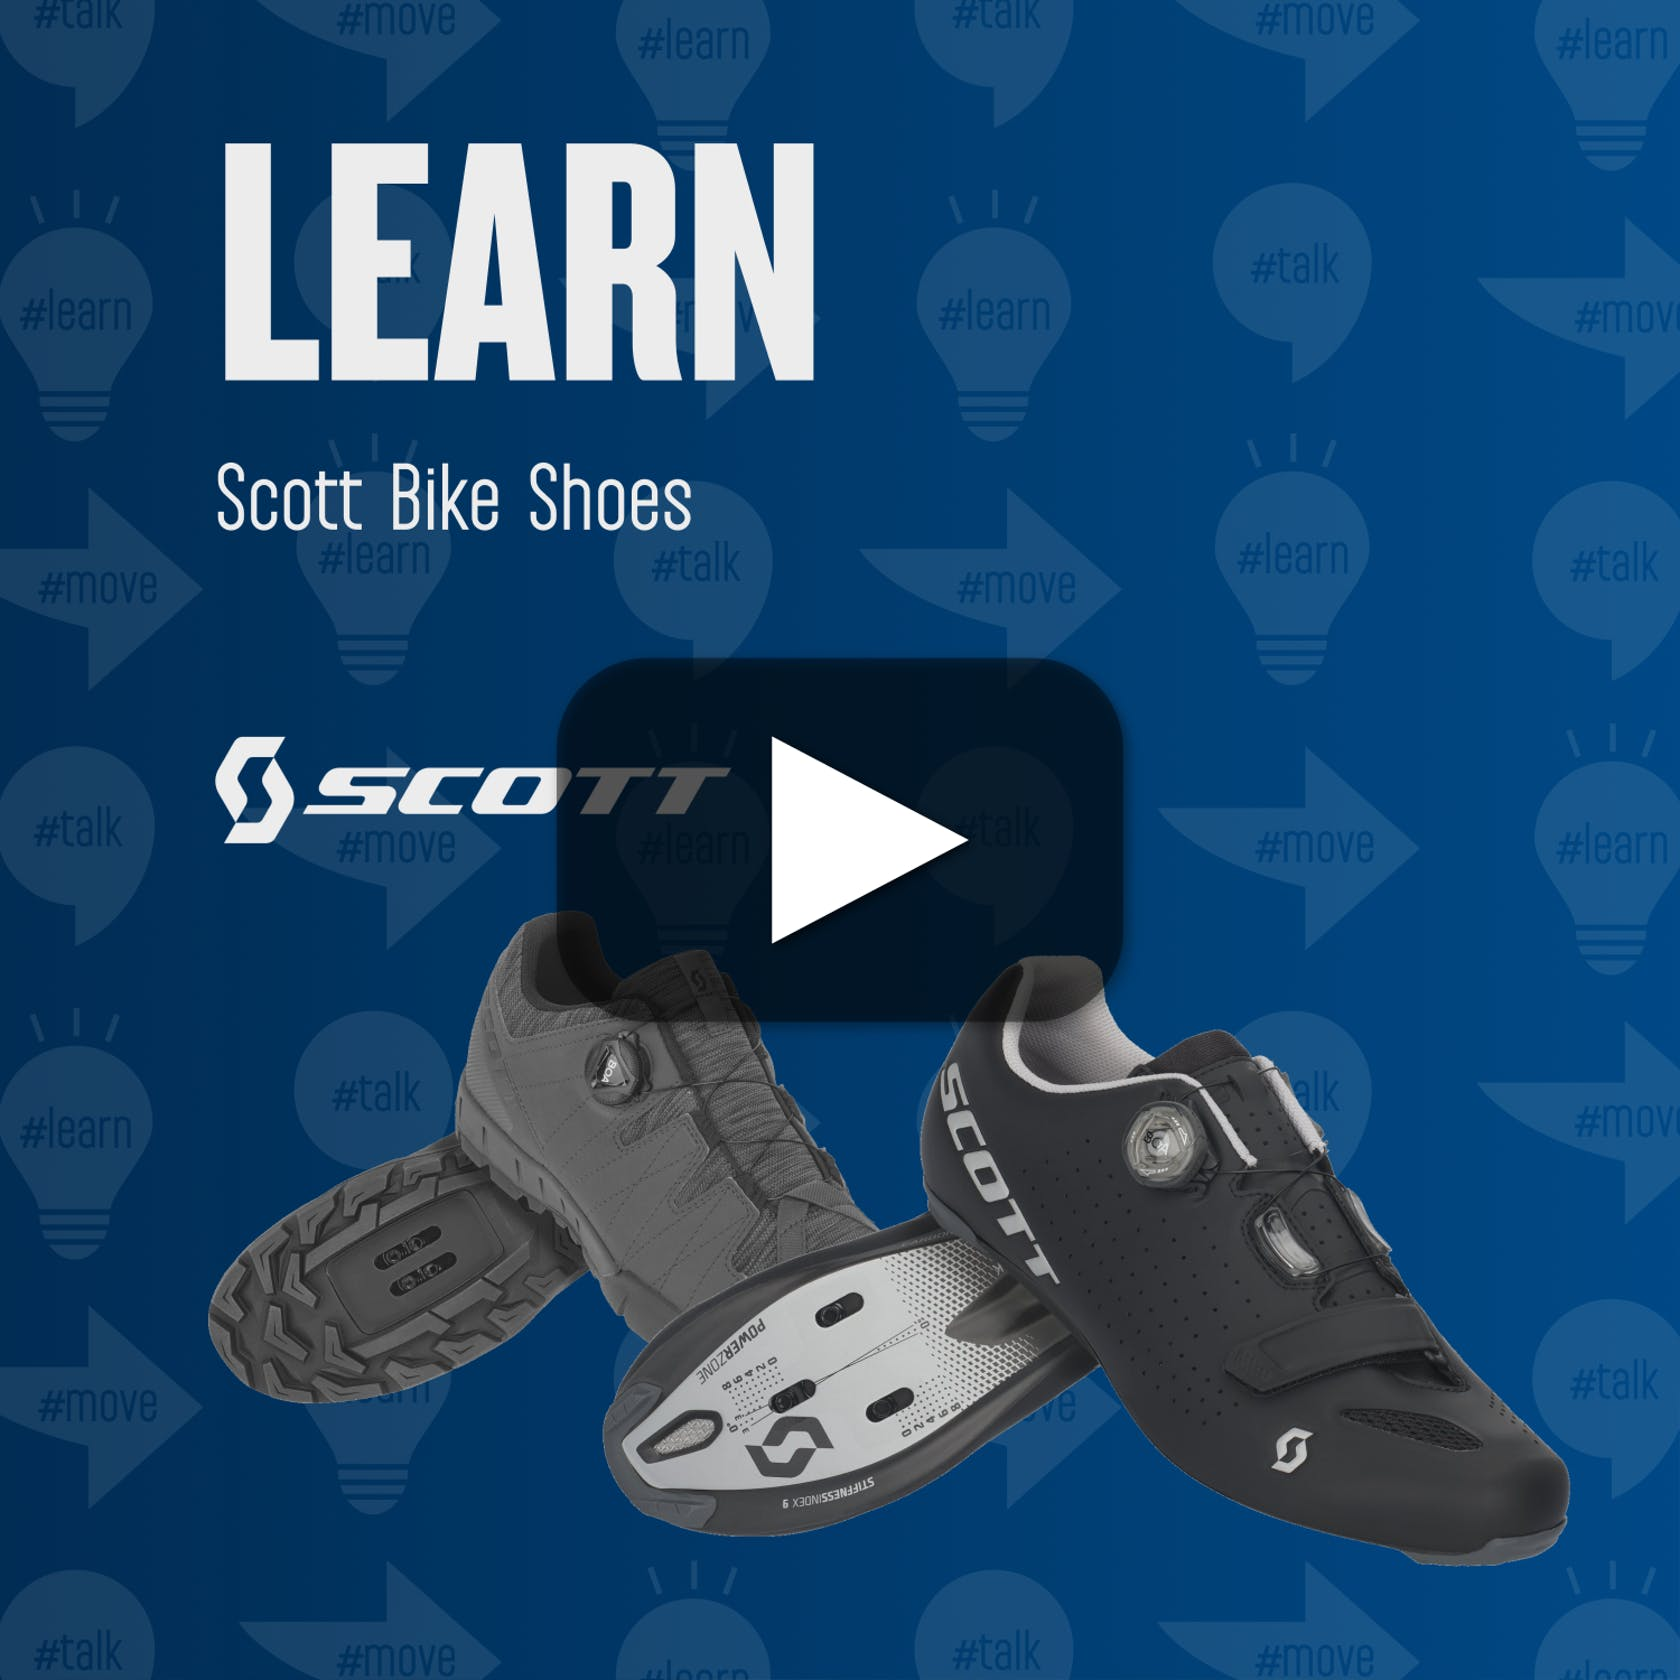 LEARN Scott Bike Shoes